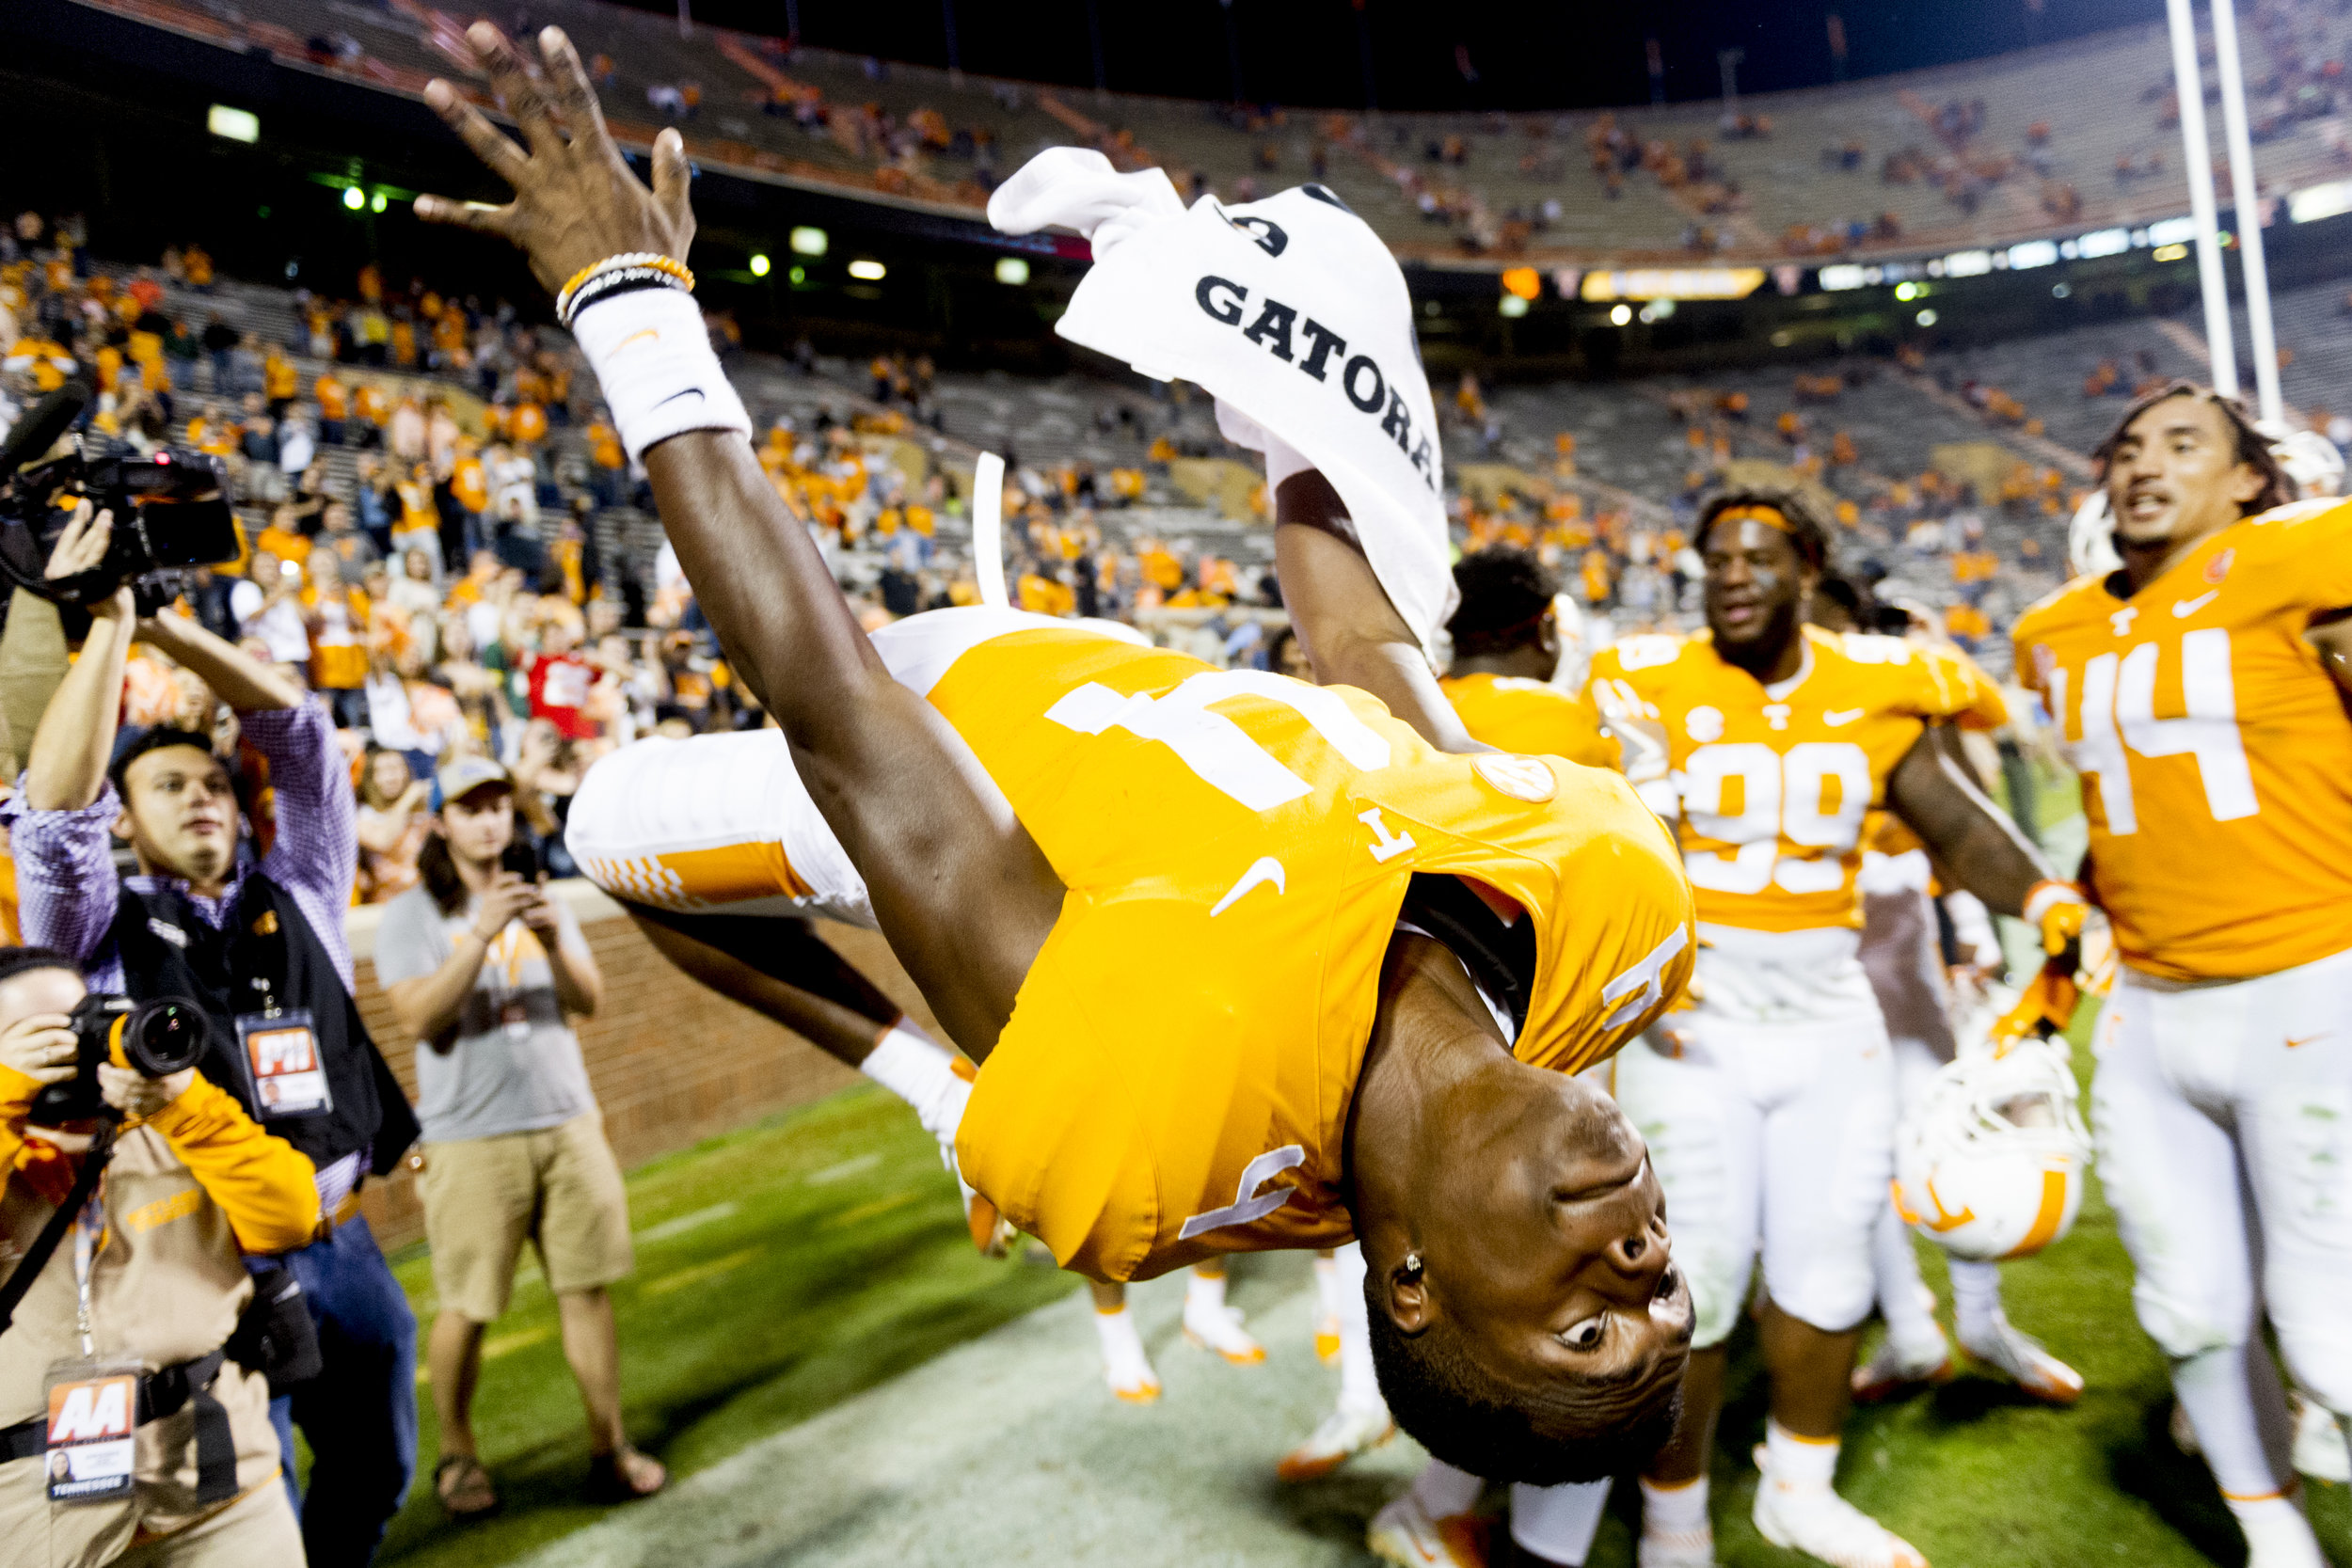 Tennessee defensive back Maleik Gray (4) does a backflip after defeating Southern Miss 24-10 at Neyland Stadium.